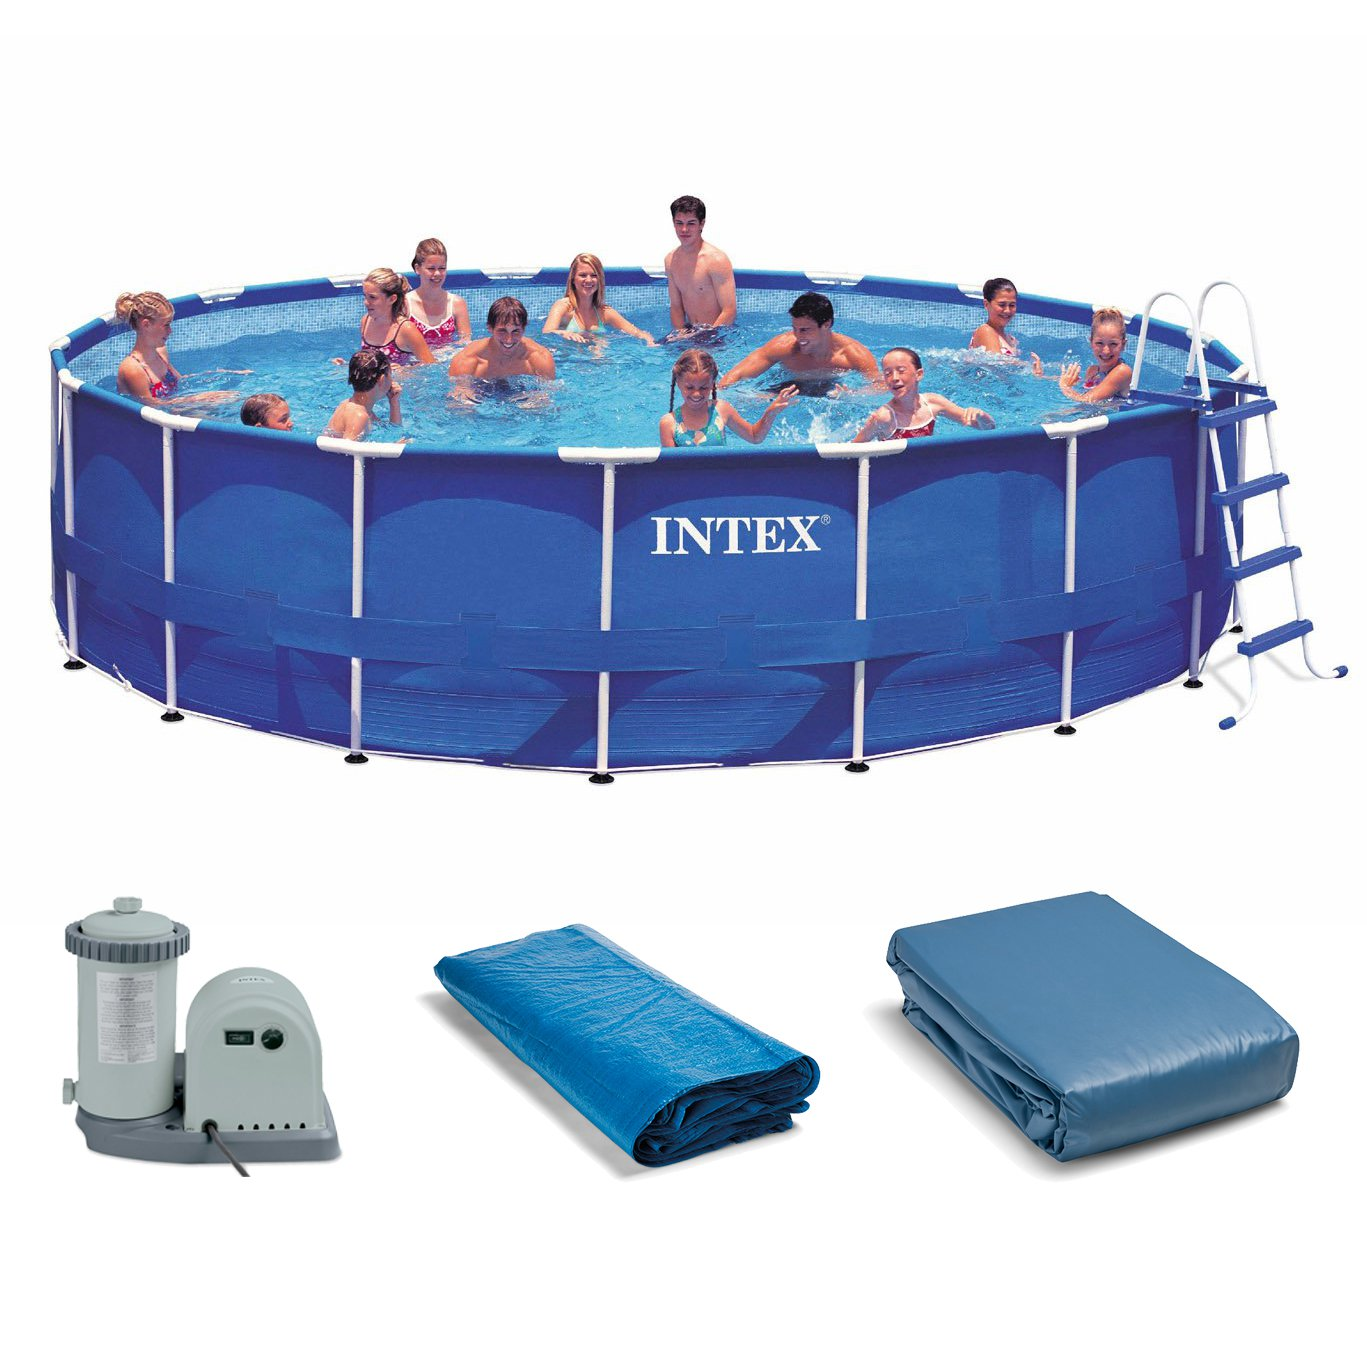 "Intex 18' x 48"" Metal Frame Above Ground Swimming Pool Set with 1500 GPH Pump"